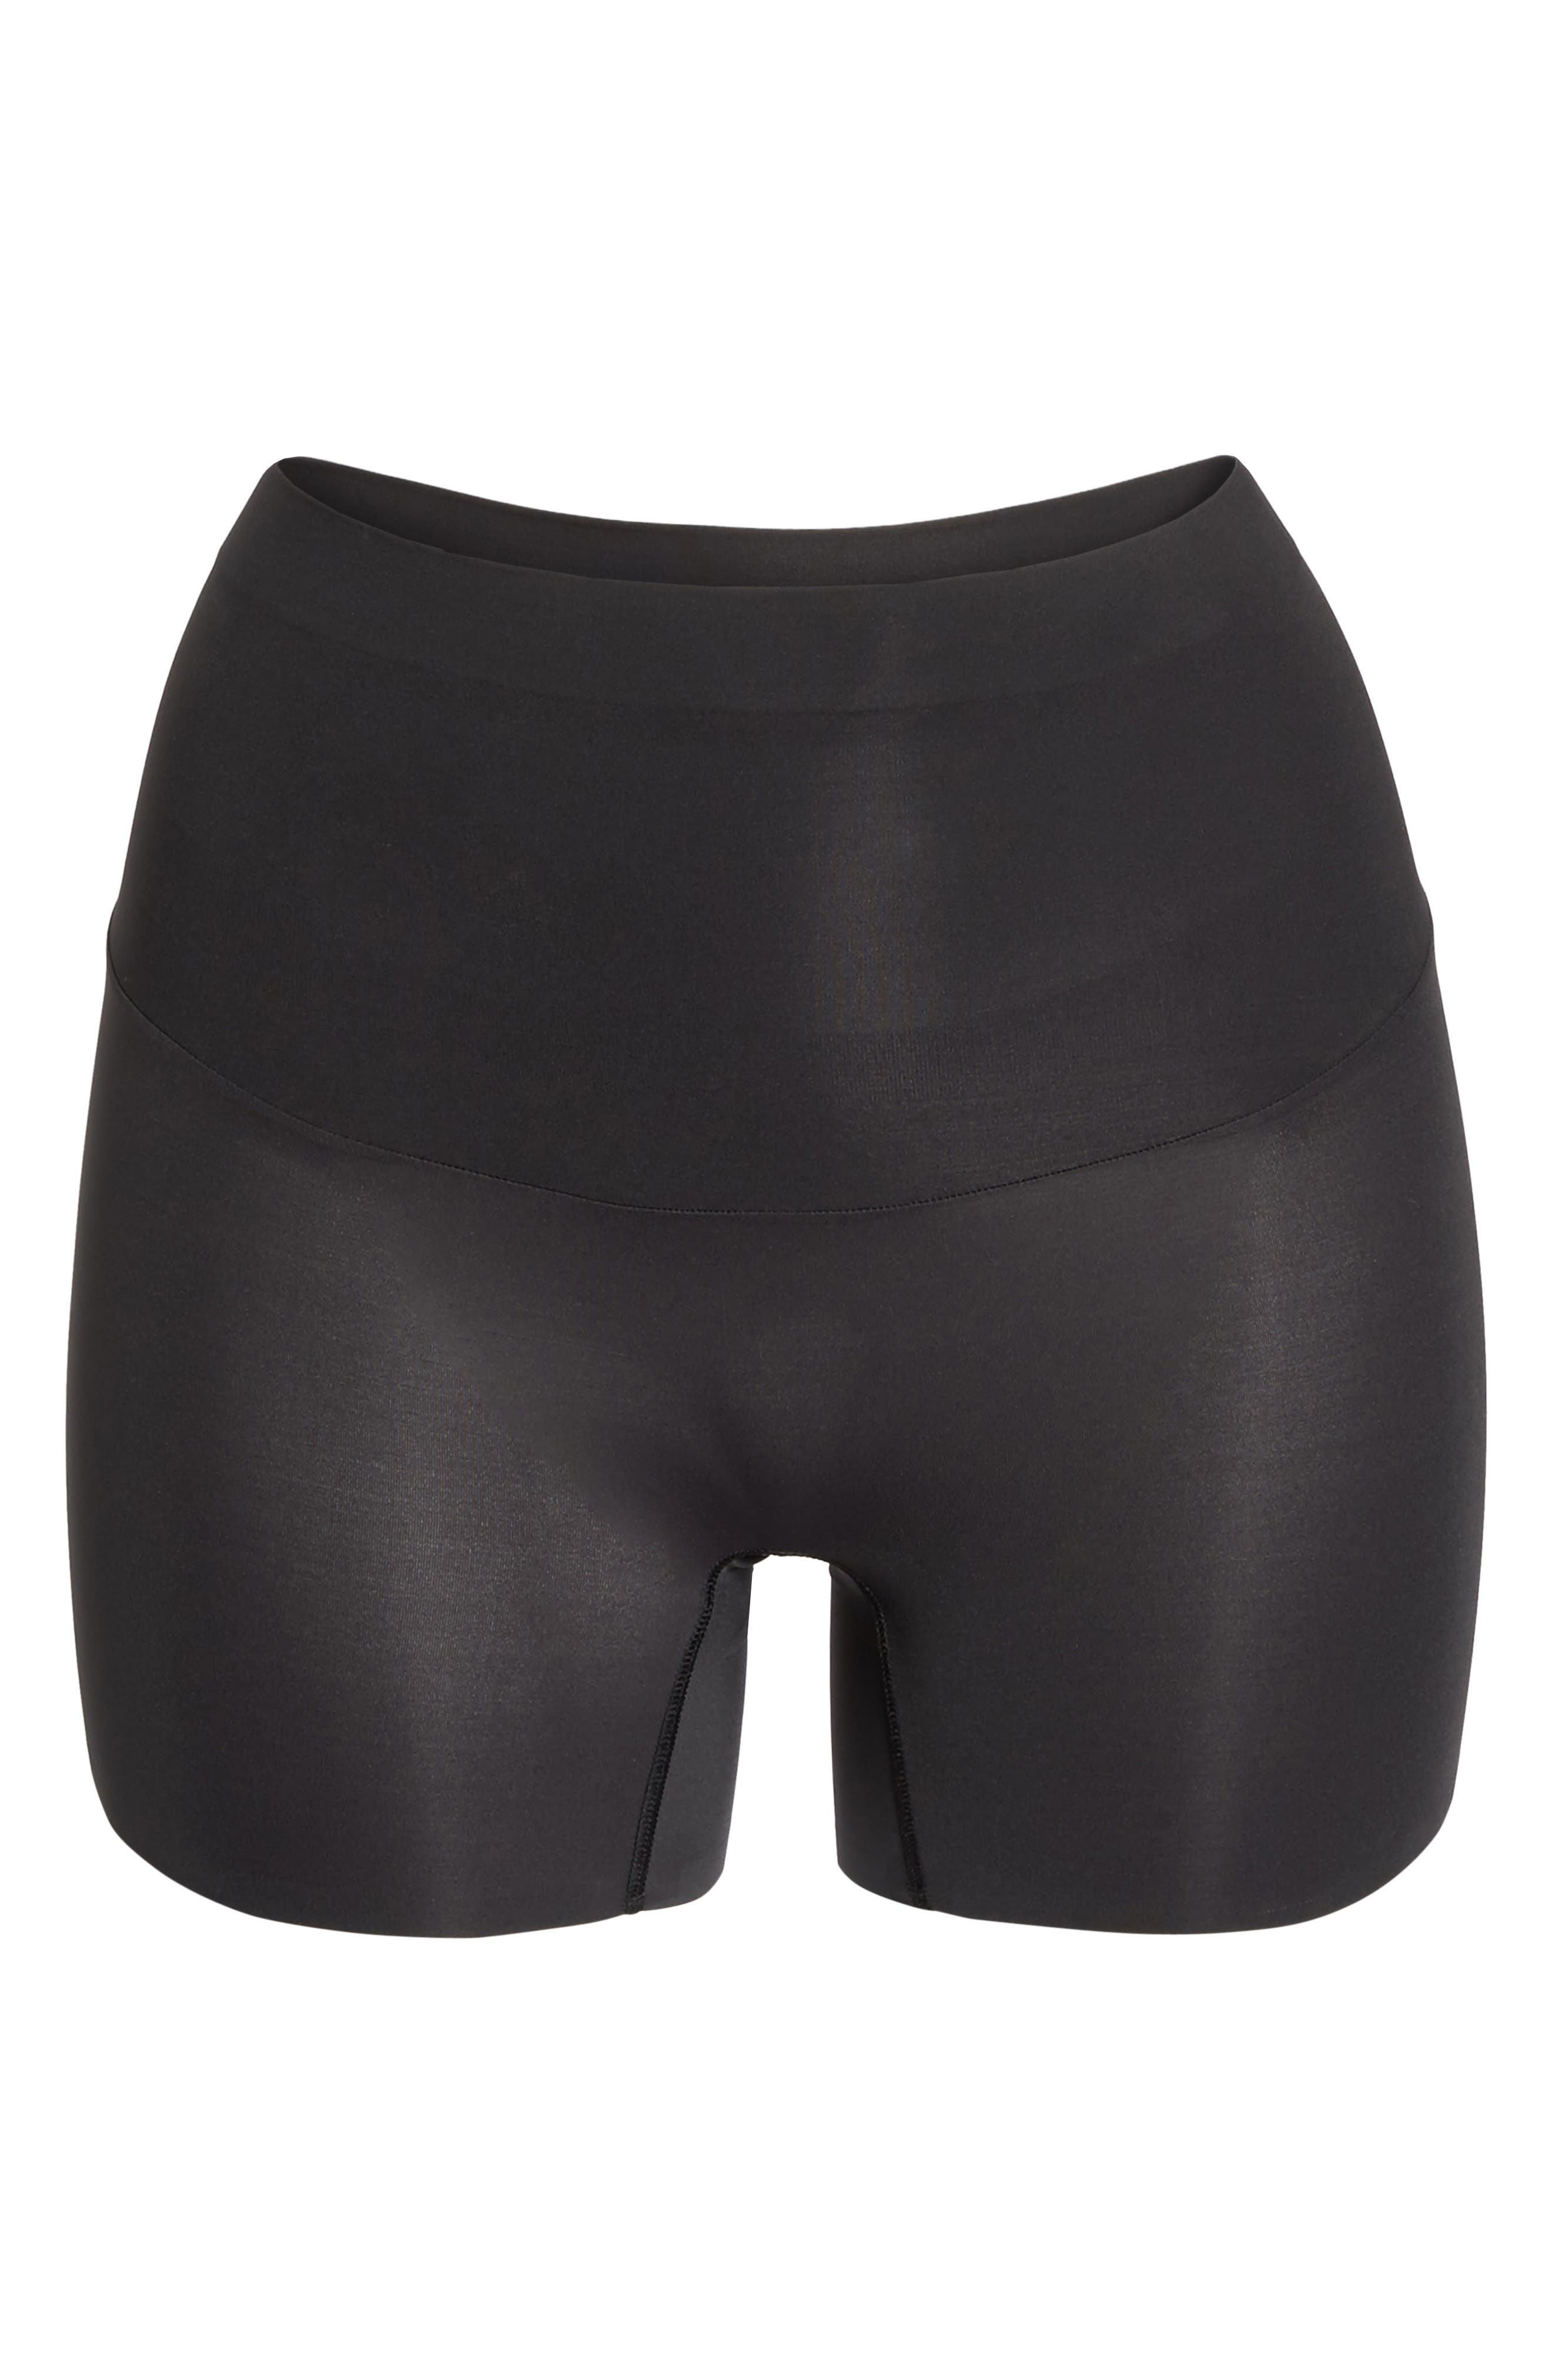 Shape My Day Girl Shorts,                             Alternate thumbnail 4, color,                             Black